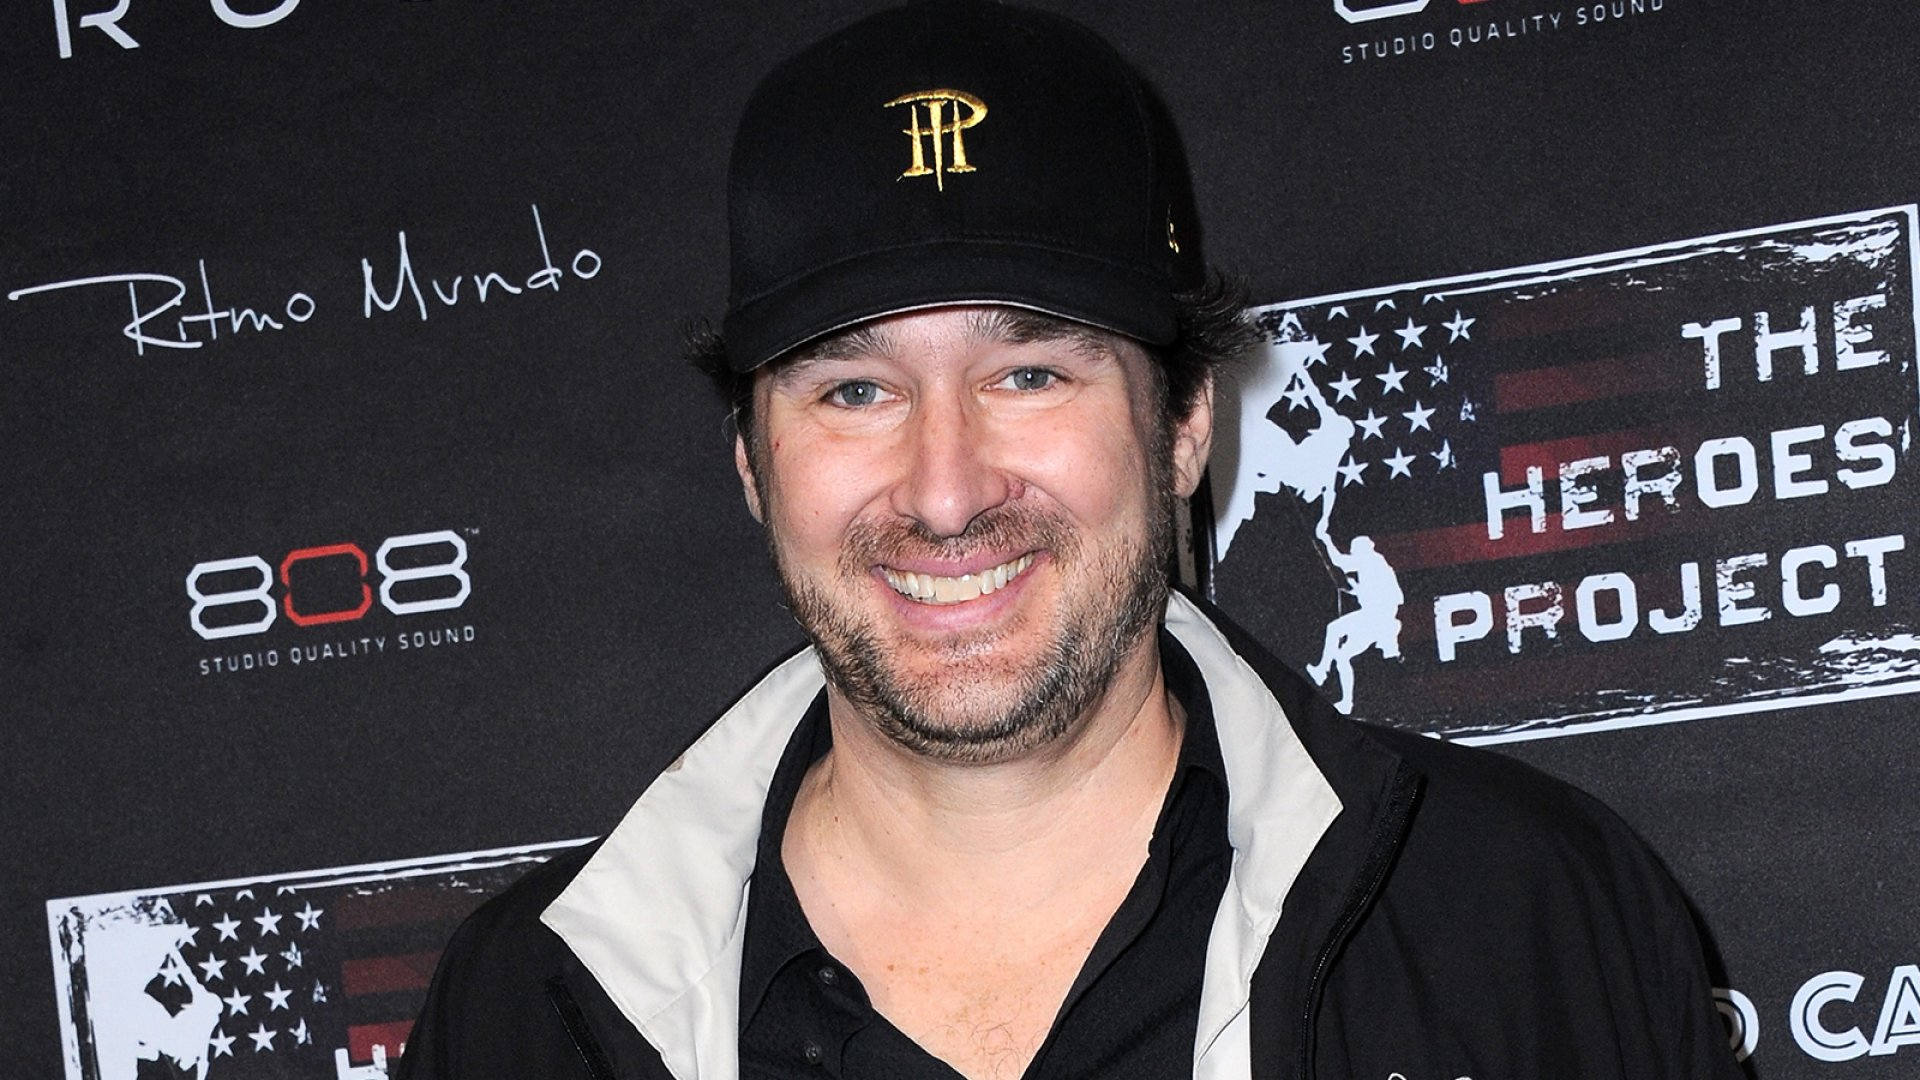 Professional poker player Phil Hellmuth at the Hollywood Cares Pre-Oscar Celebrity Poker Invitational held at Confidential Beverly Hills on February 19, 2015.